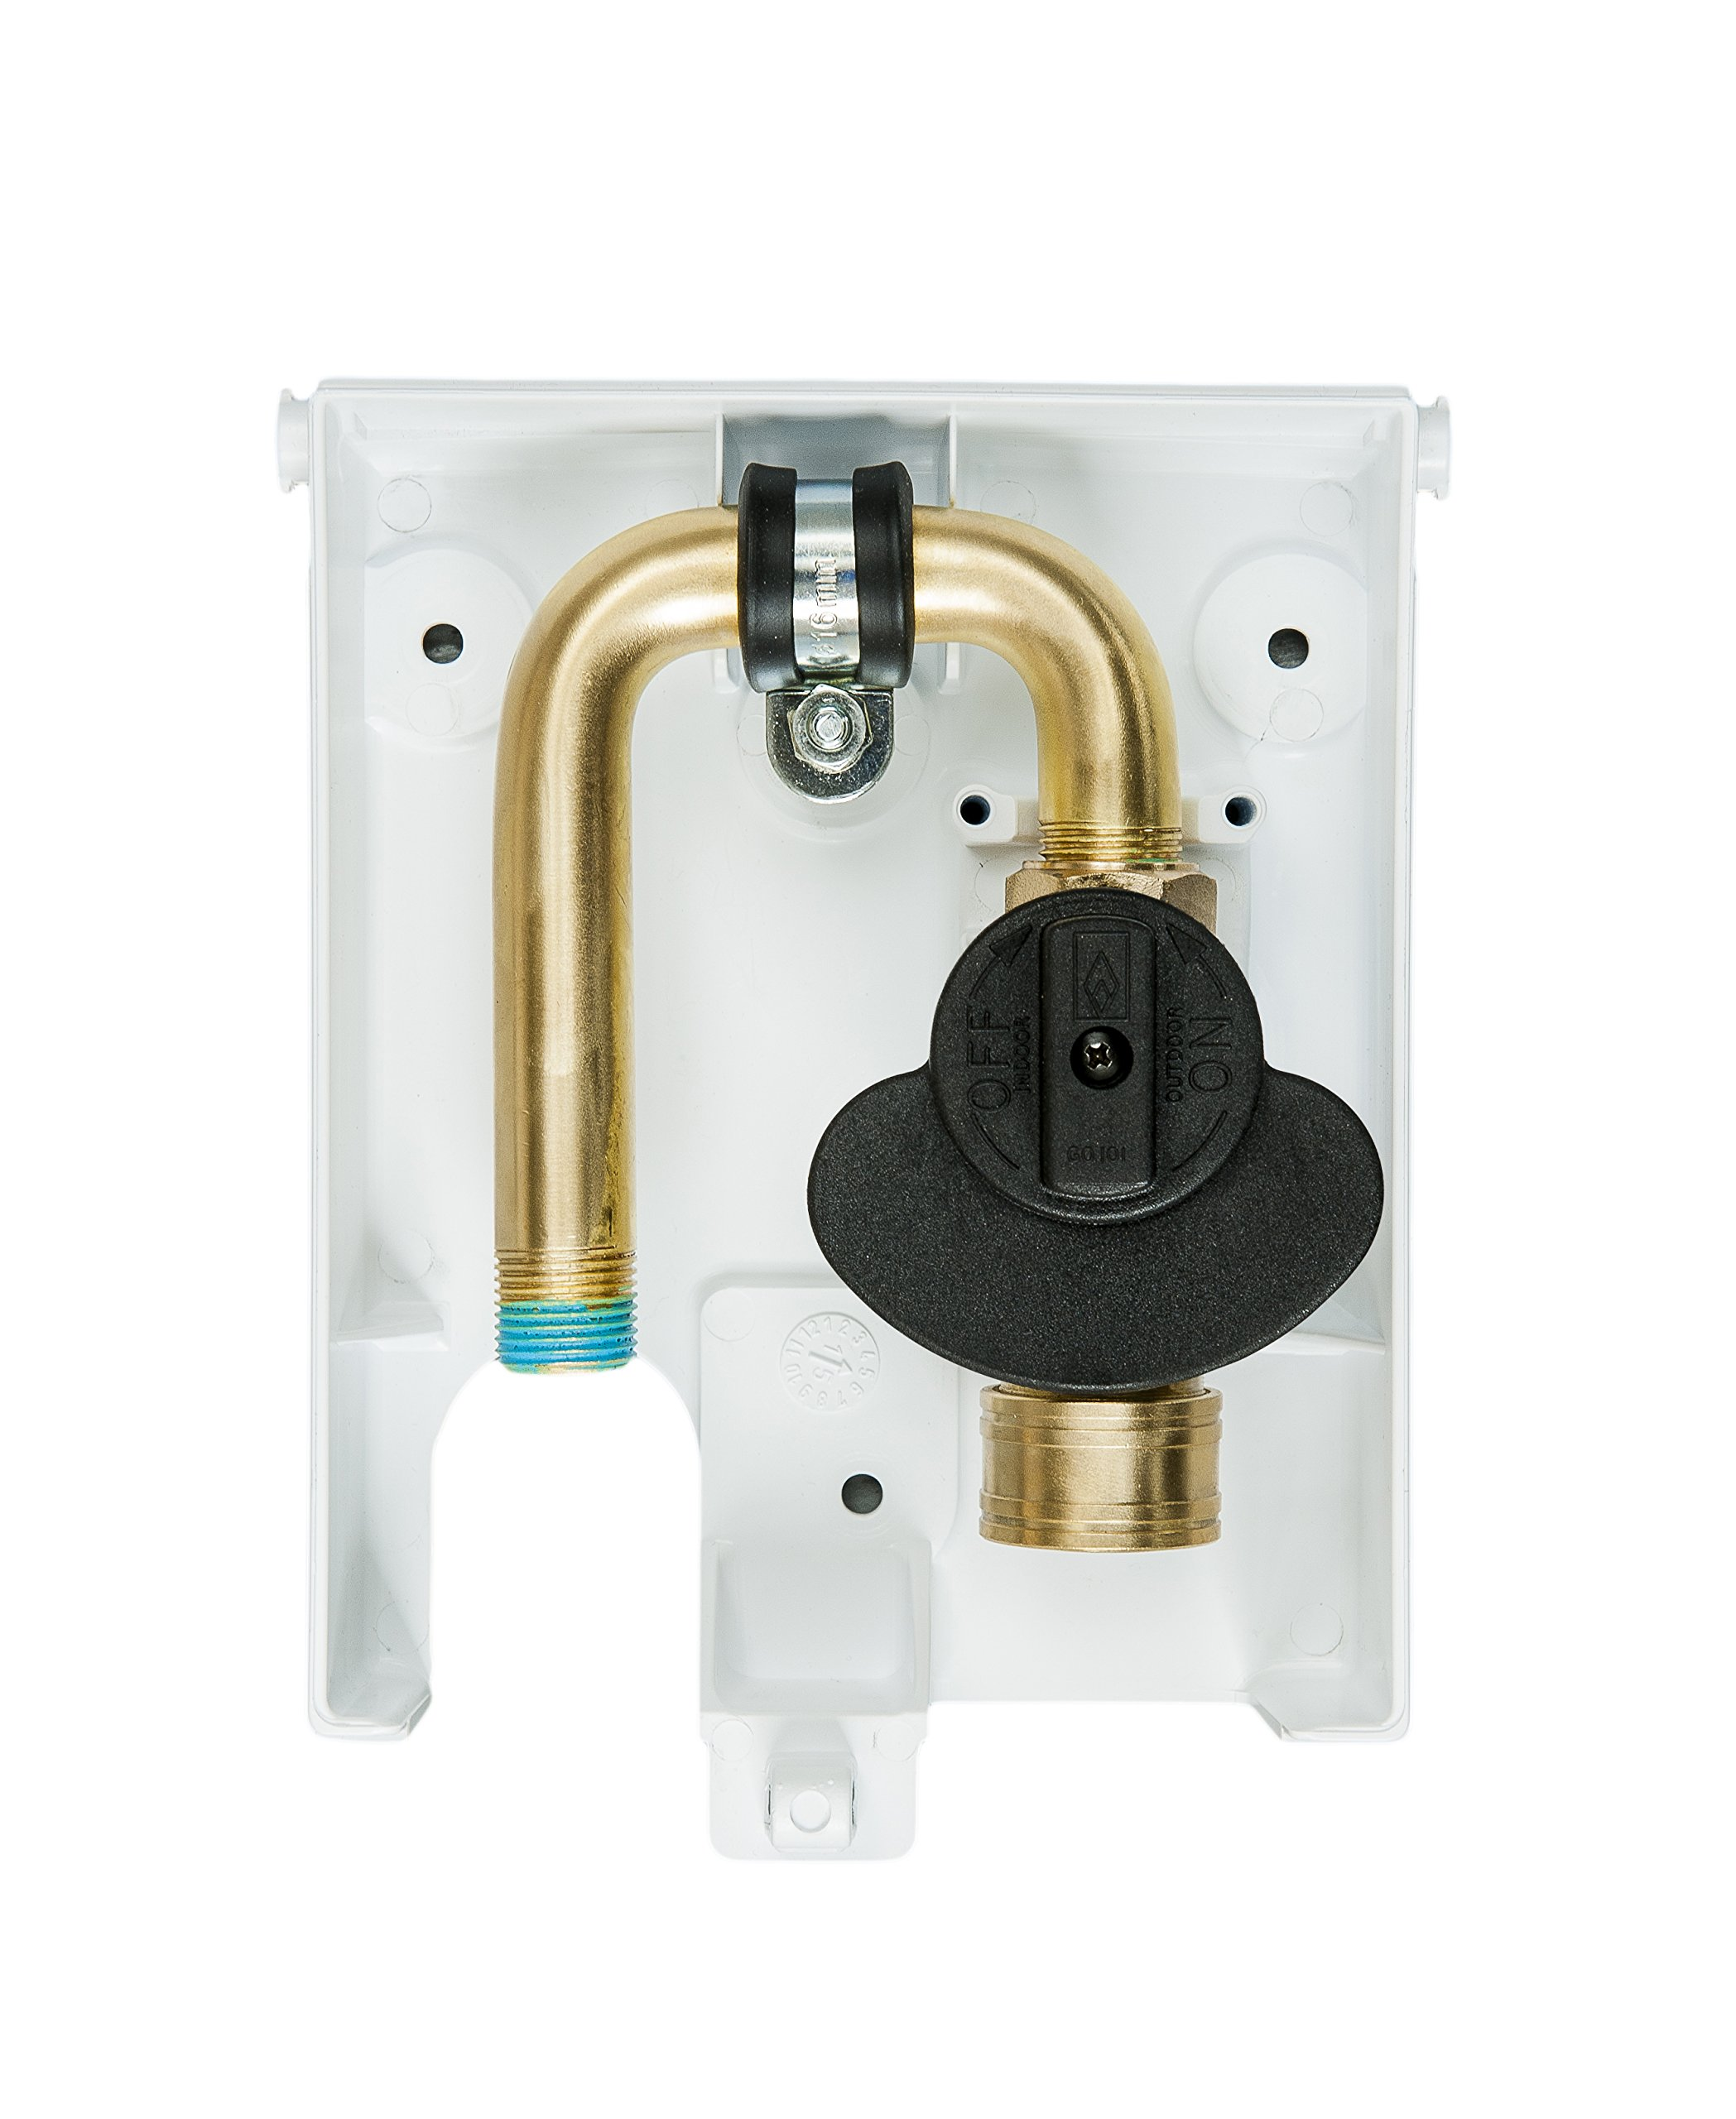 Burnaby Manufacturing G0101-6W-50-BI Gas Plug Convenience Outlet